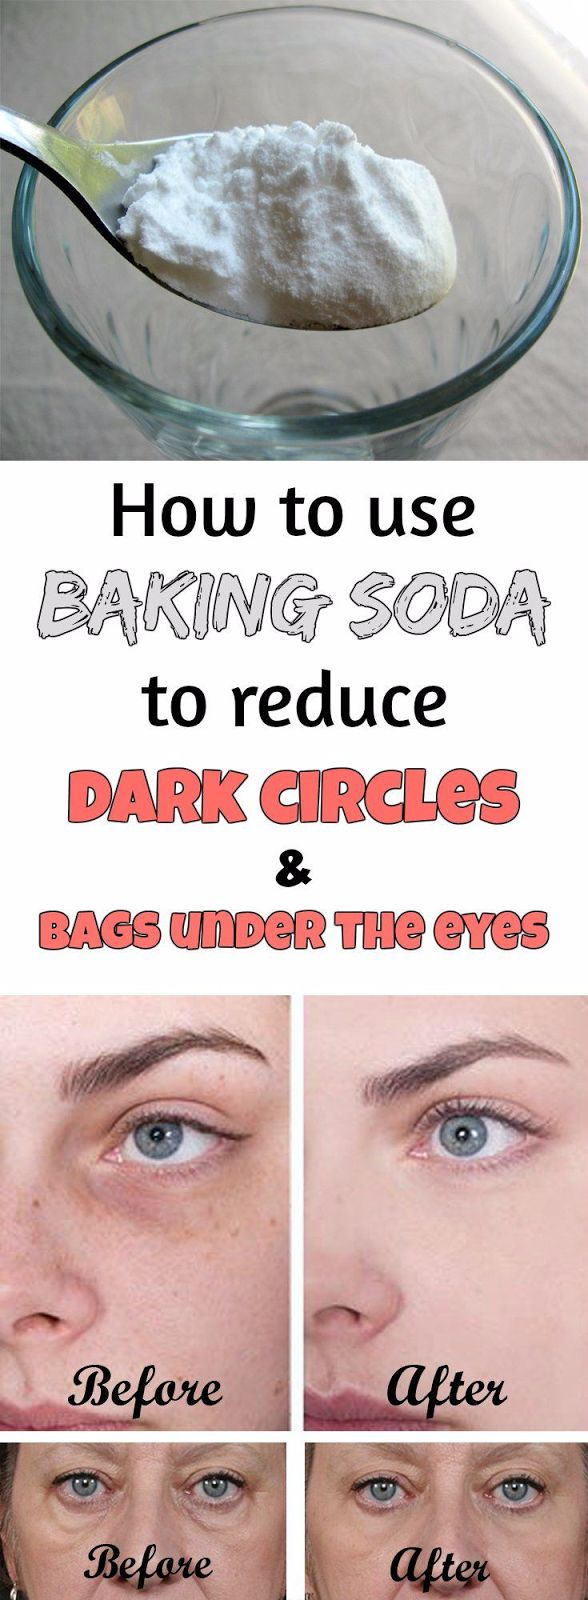 how to get rid of bags under eyes diy